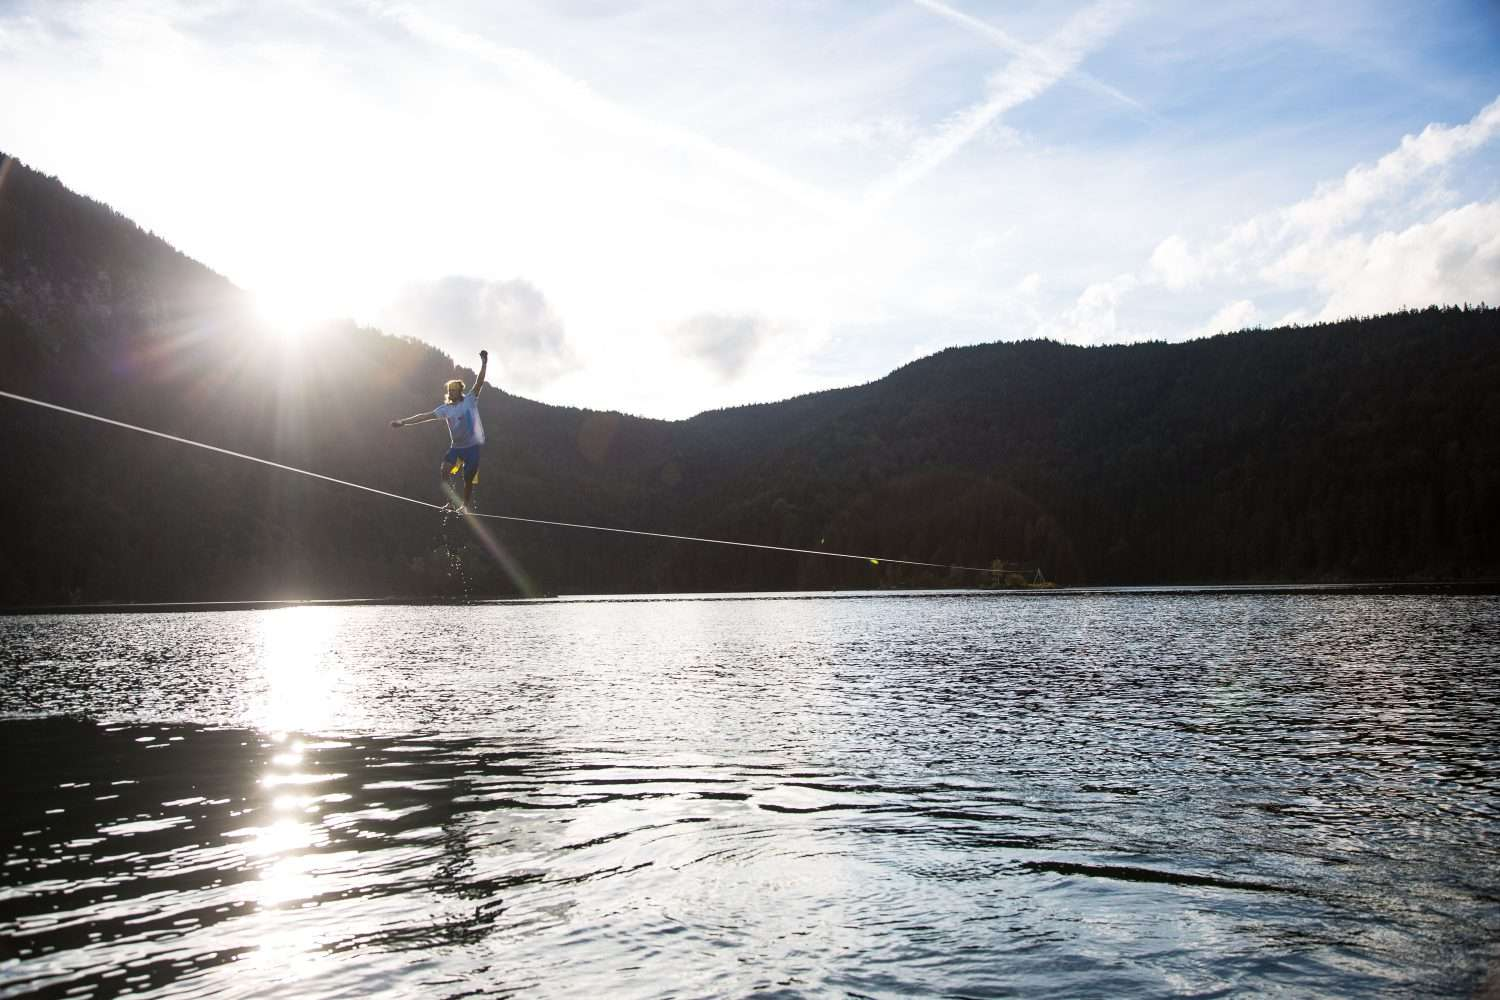 Eibsee-slackline-world-record (13).jpg